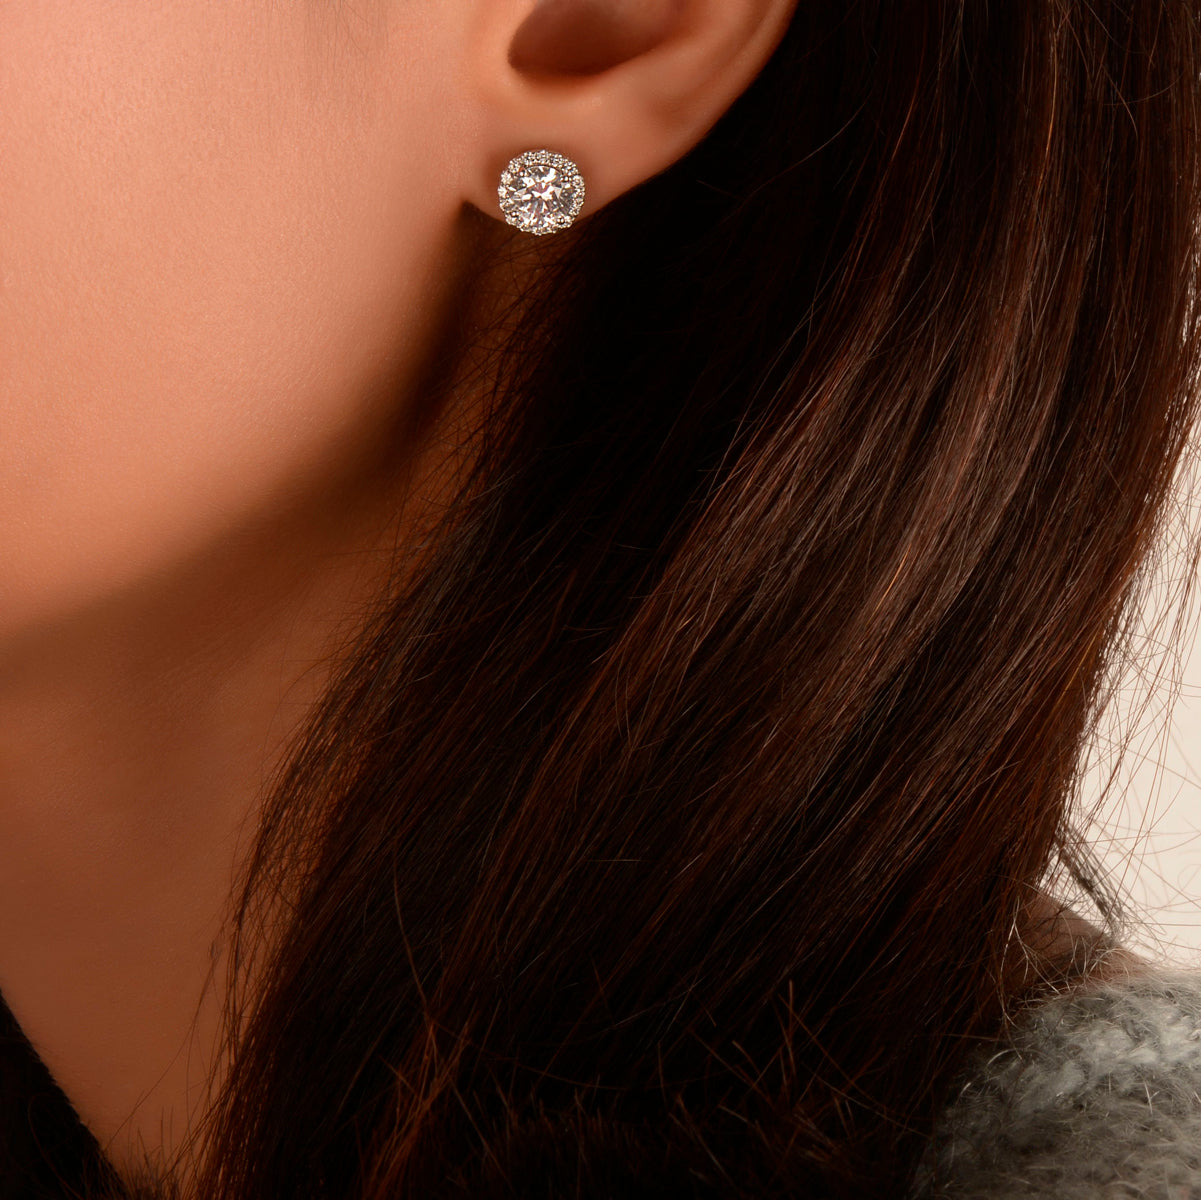 details colorless carat stud unbelievable g value index in gold natural white f diamond super genuine karat earrings